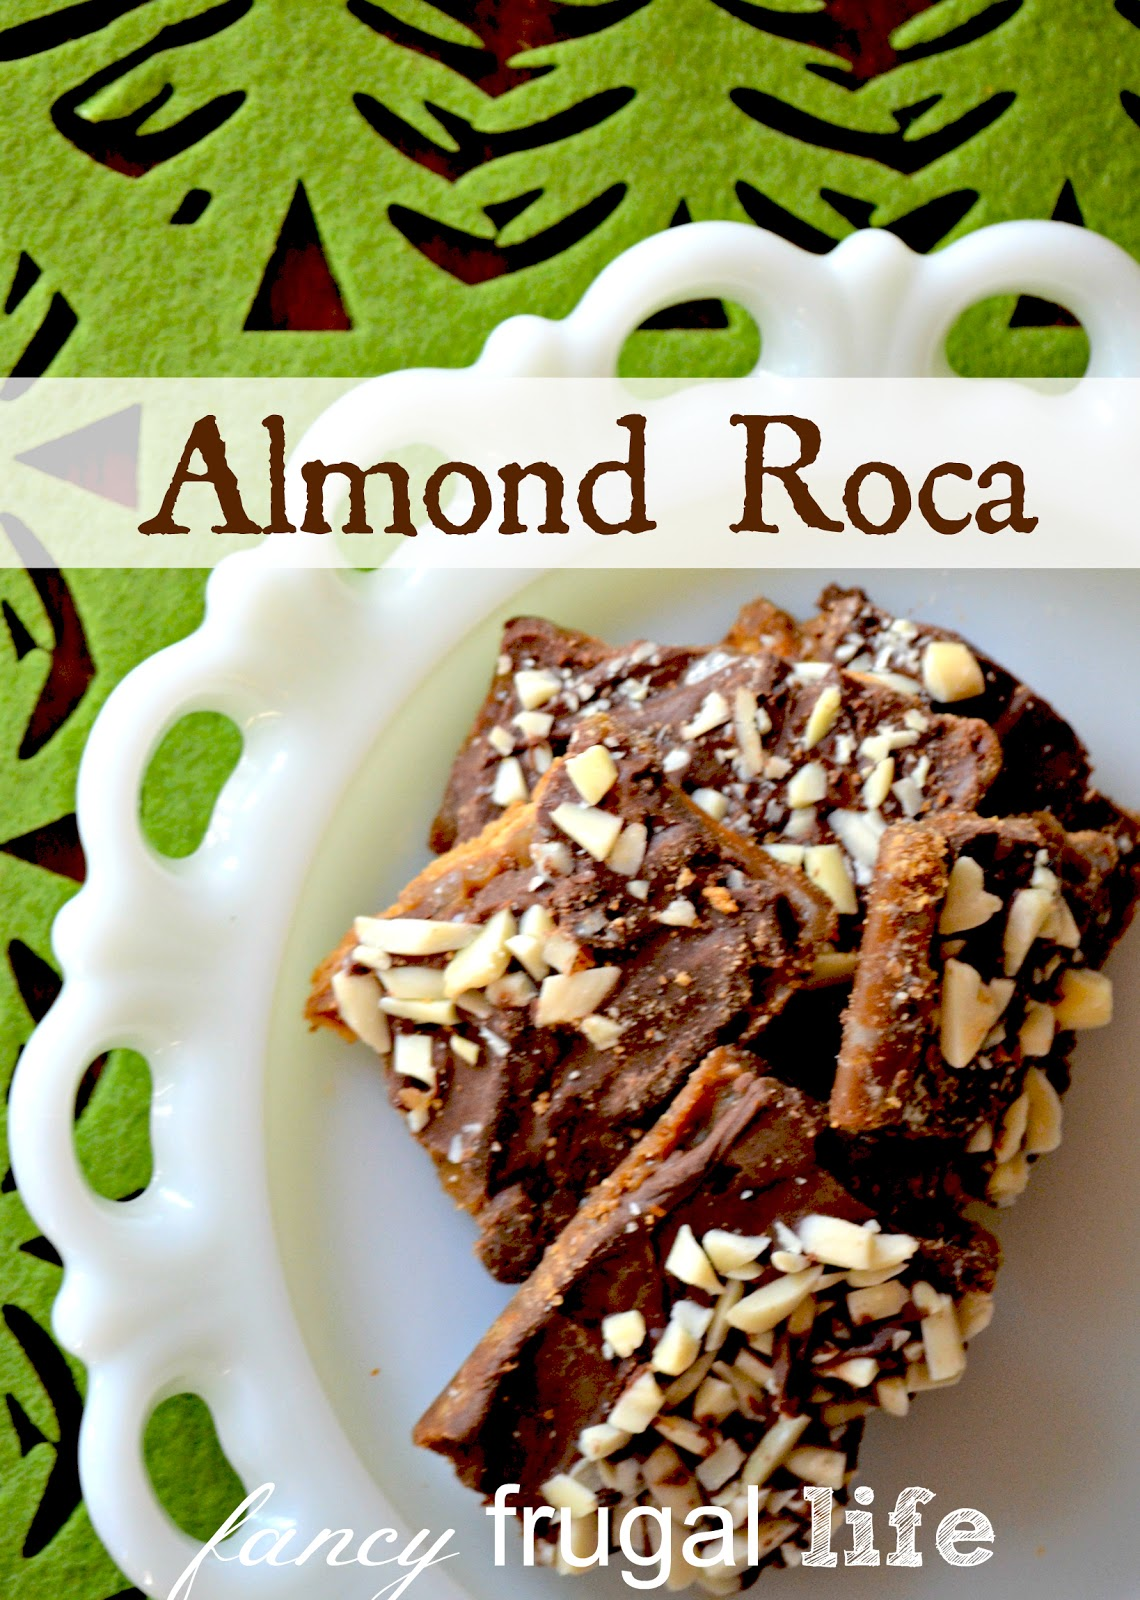 My Grandma Bonnie's Almond Roca Recipe |